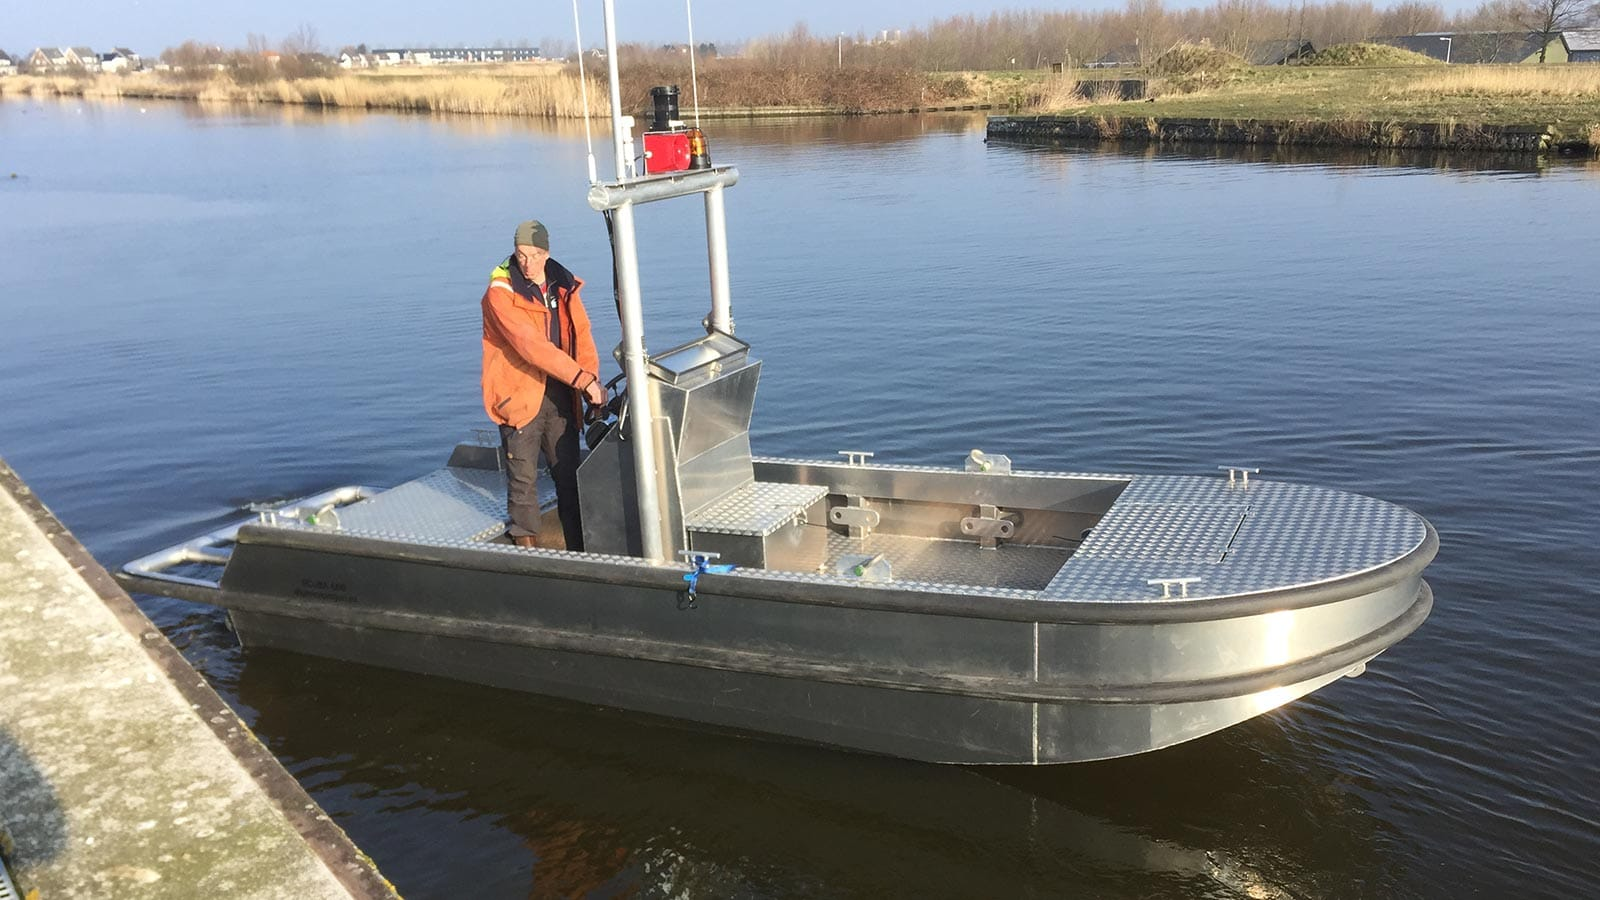 AluminiumJon.nl-Scuba 600-steering console in the middle and 2x 40 hp Yamaha outboard Motors